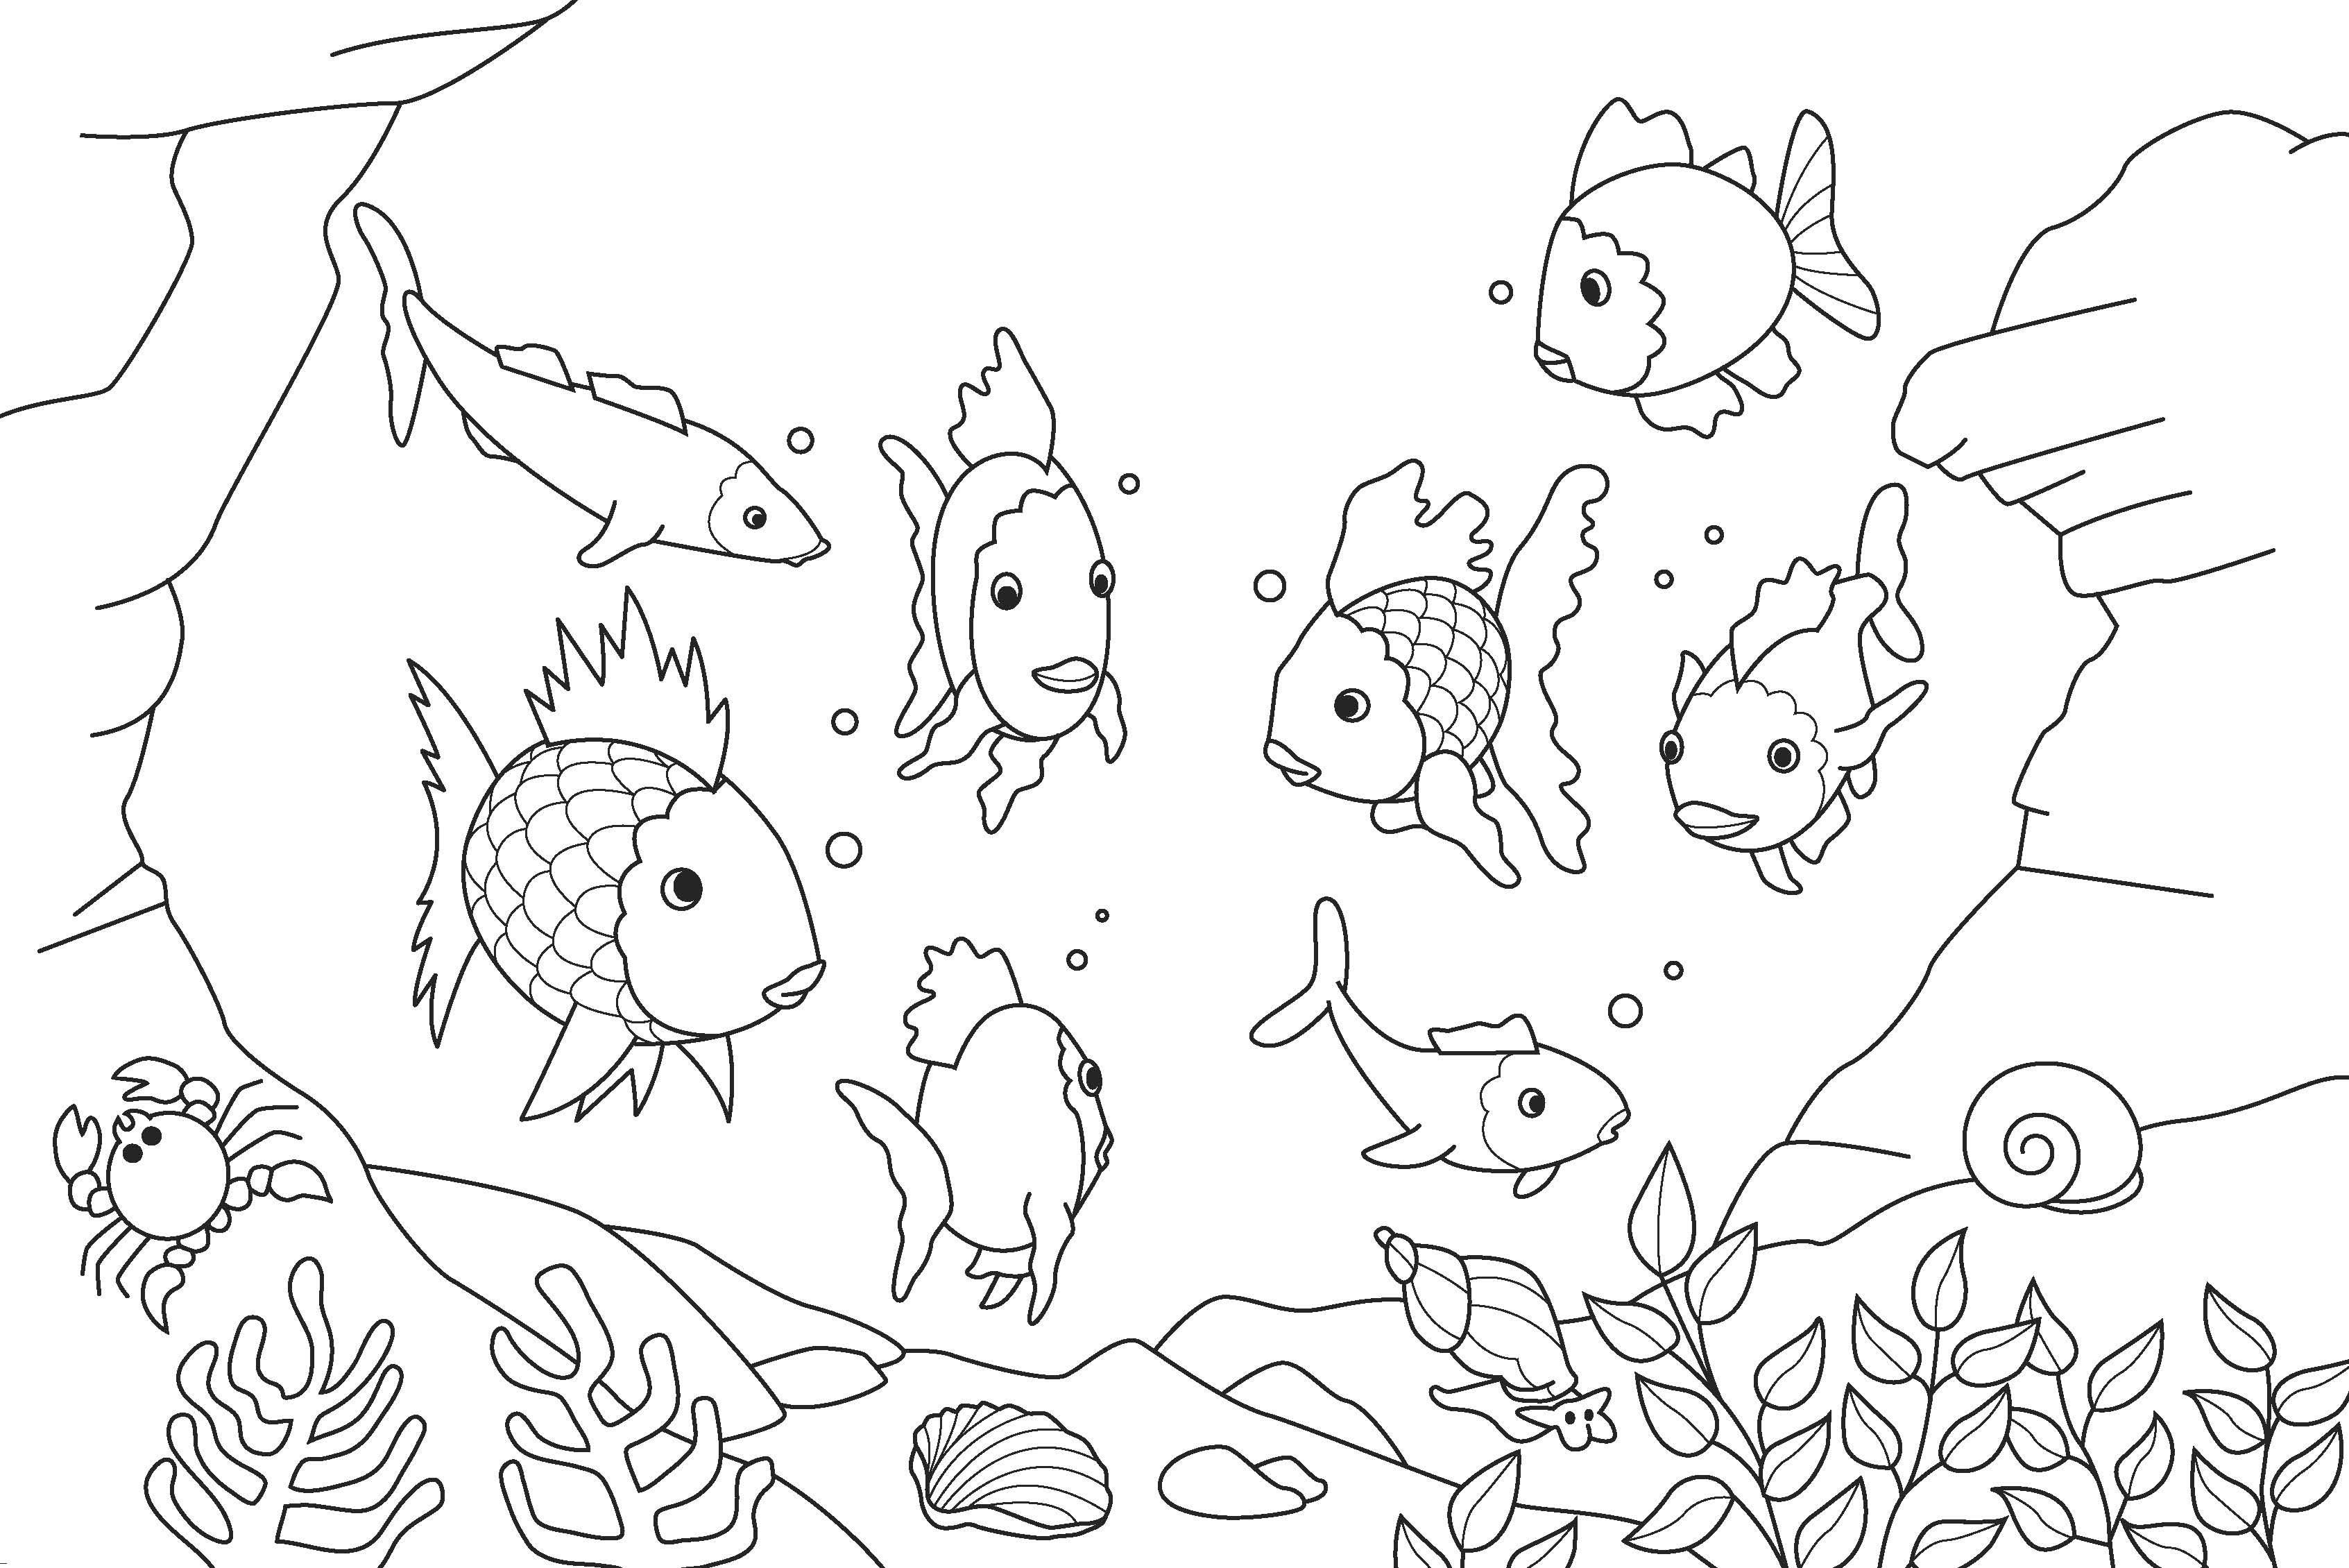 coloring pages of fishing - photo#23